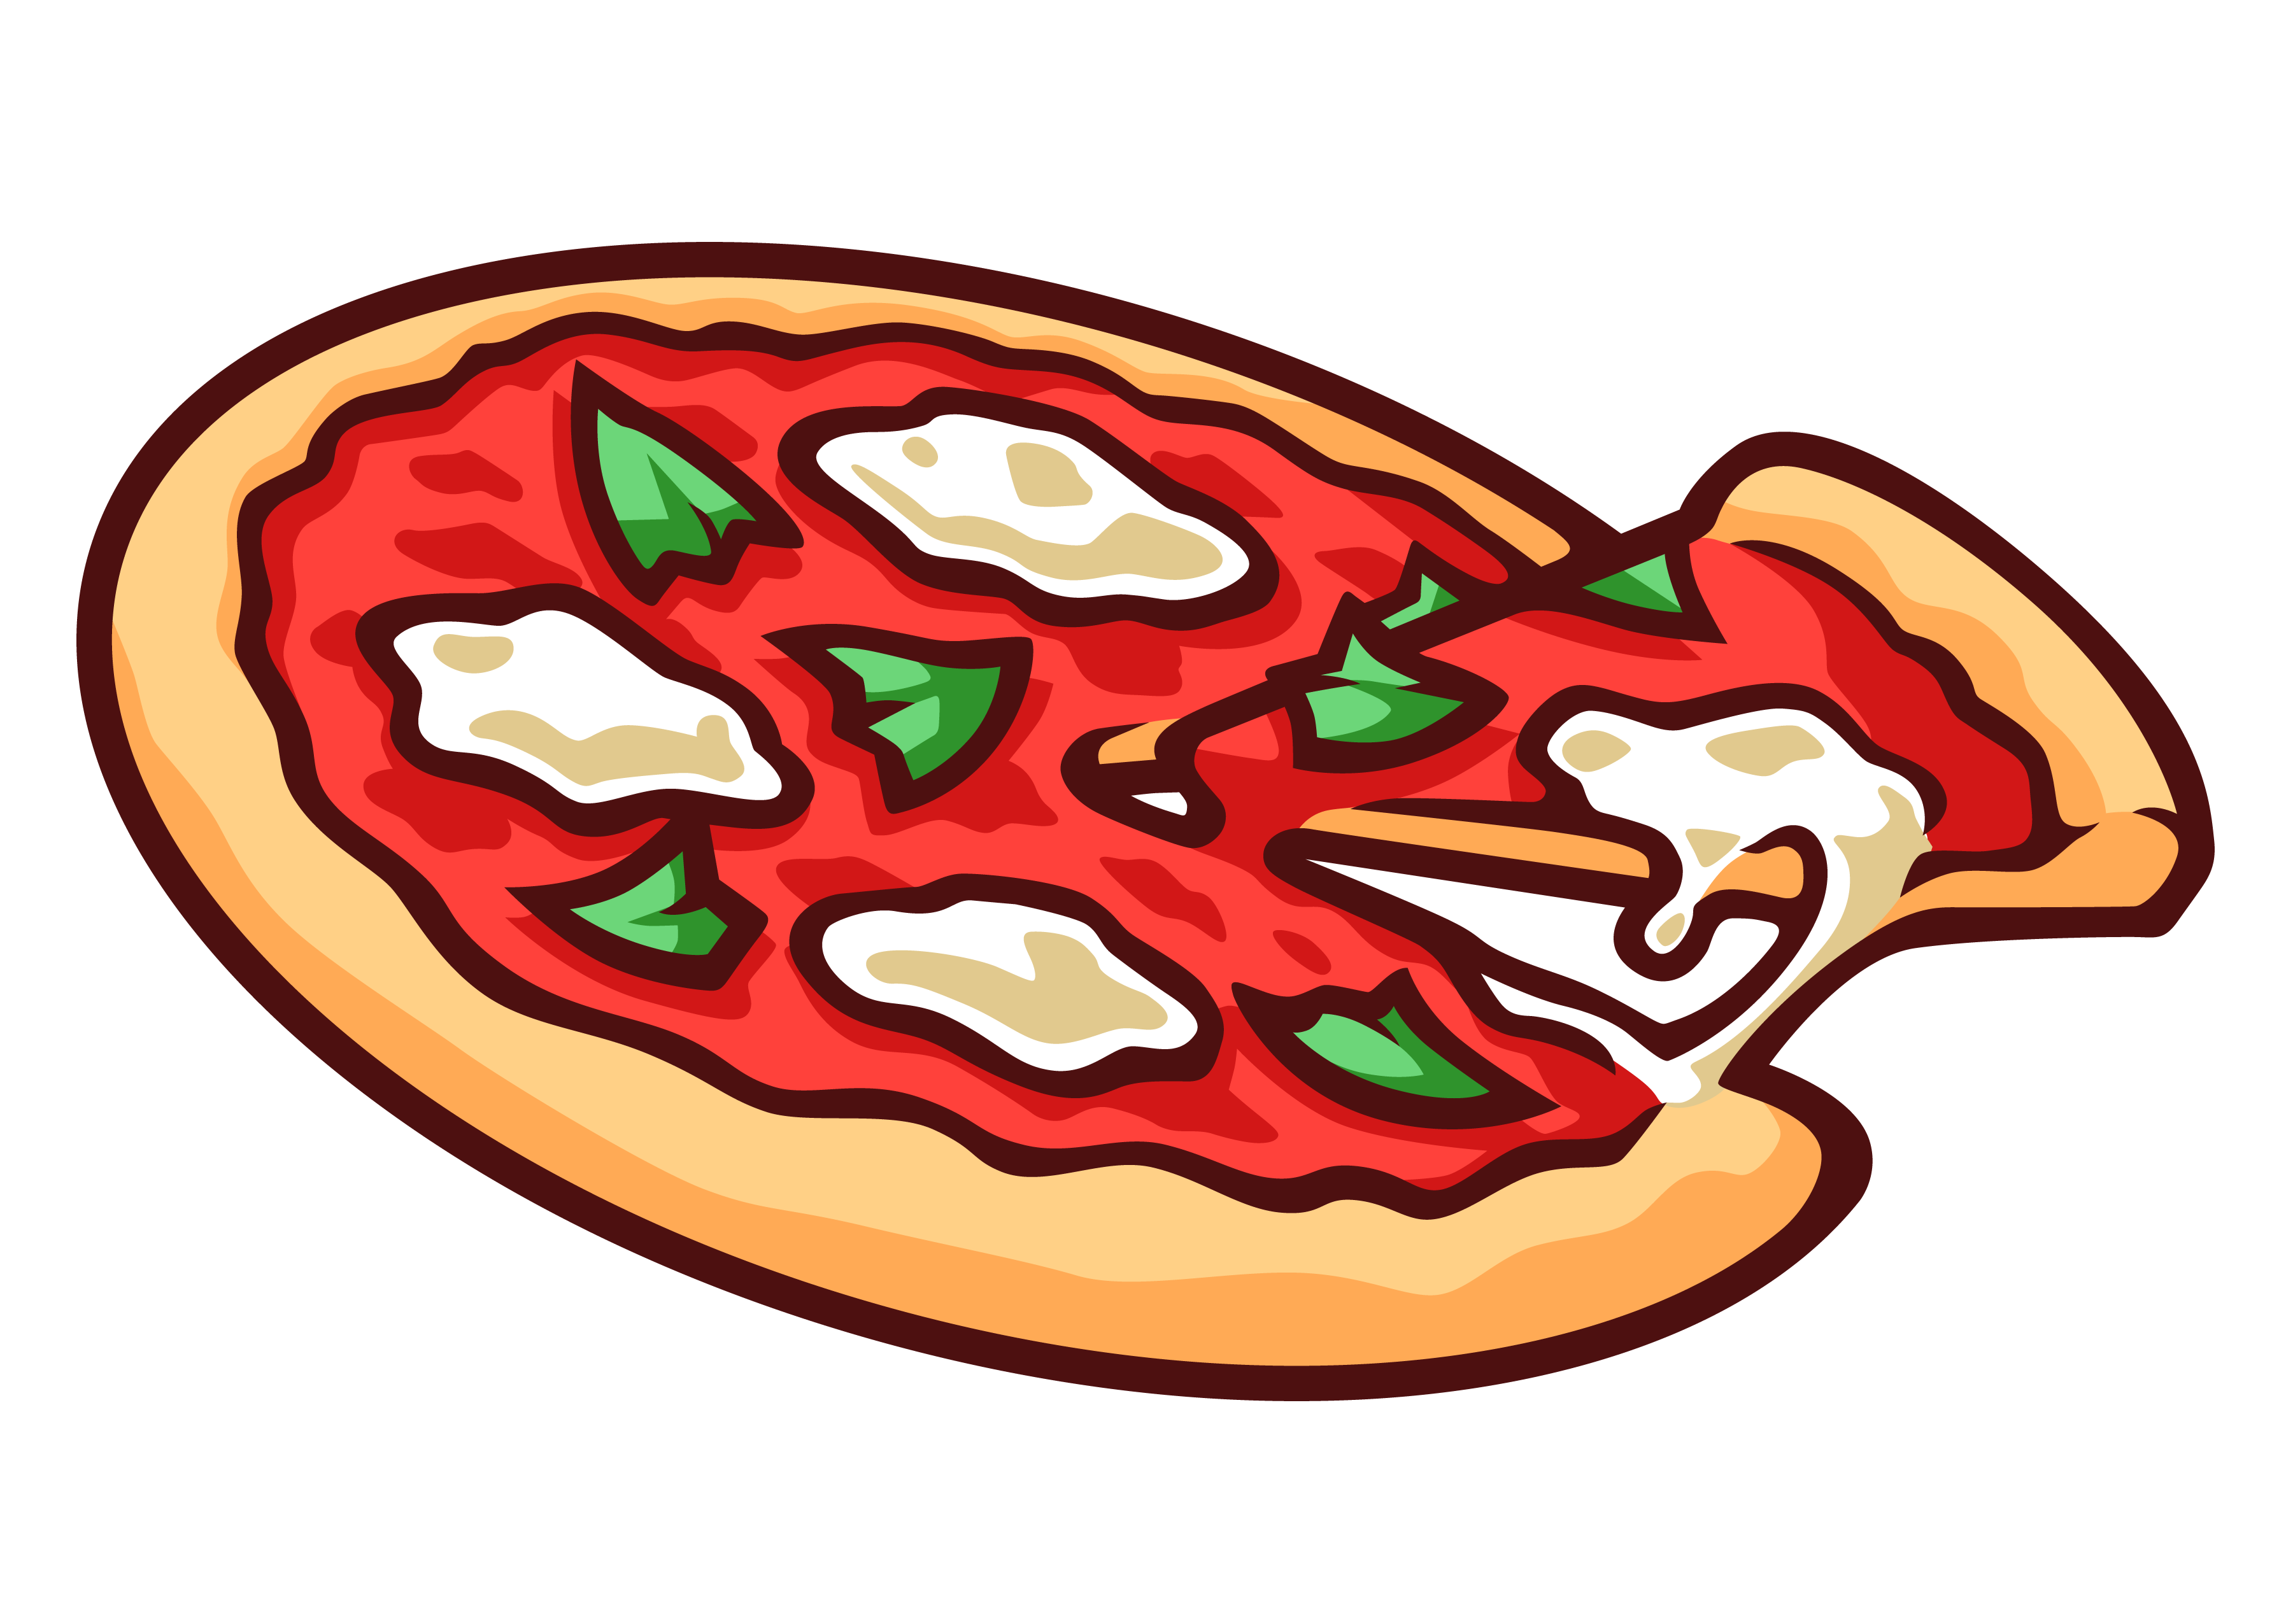 3579x2551 Veggie Pizza Clipart Free Vector Pizza Slice Mushroom Veggies Pepp